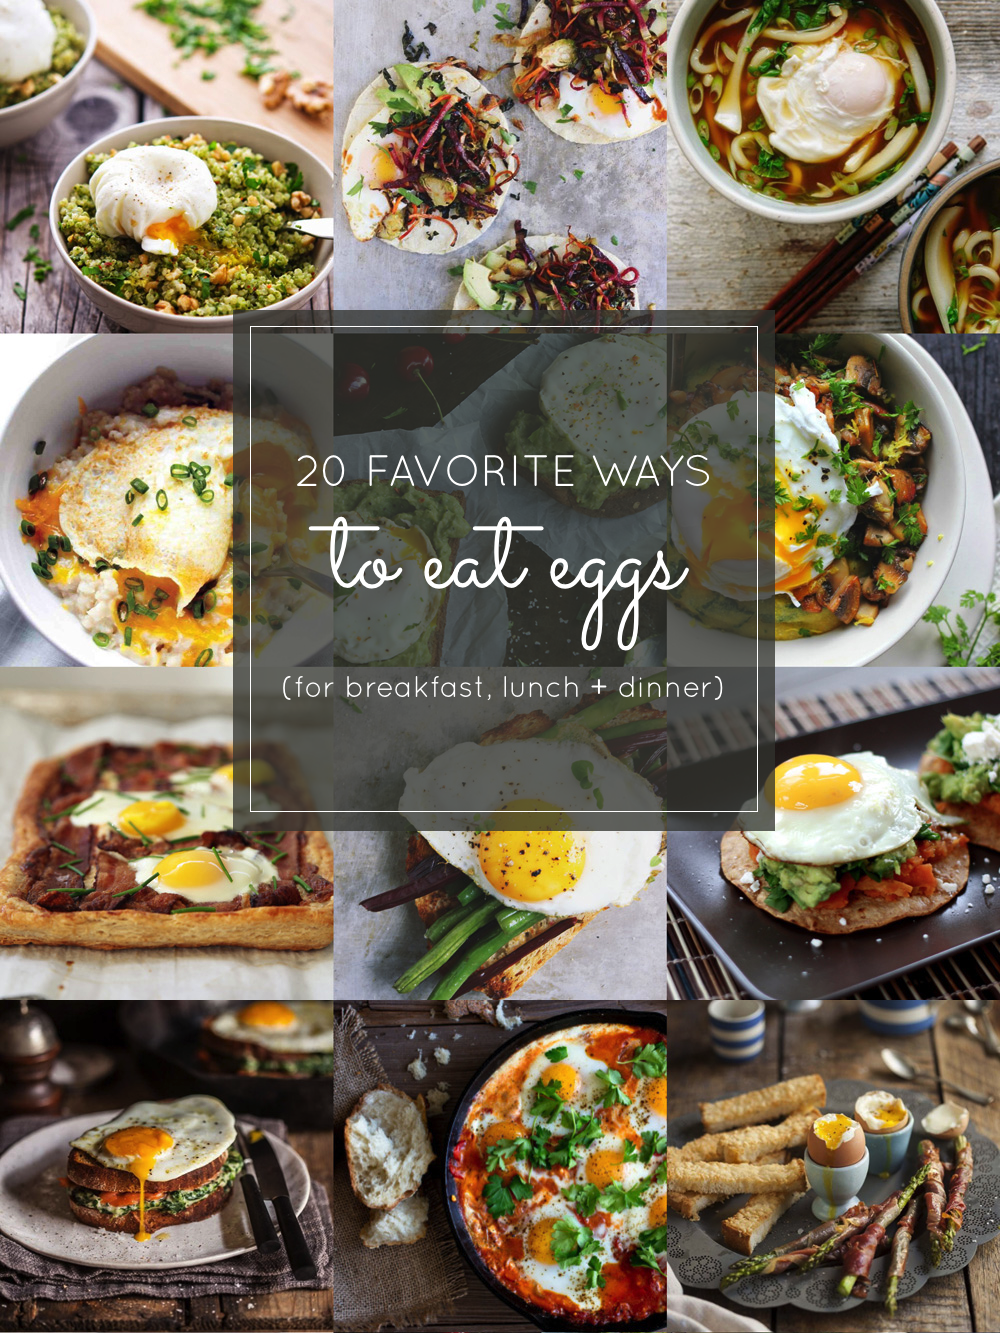 20 favorite egg recipes for breakfast lunch and dinner glitter 20 favorite egg recipes ways to eat eggs for breakfast lunch and dinner forumfinder Gallery